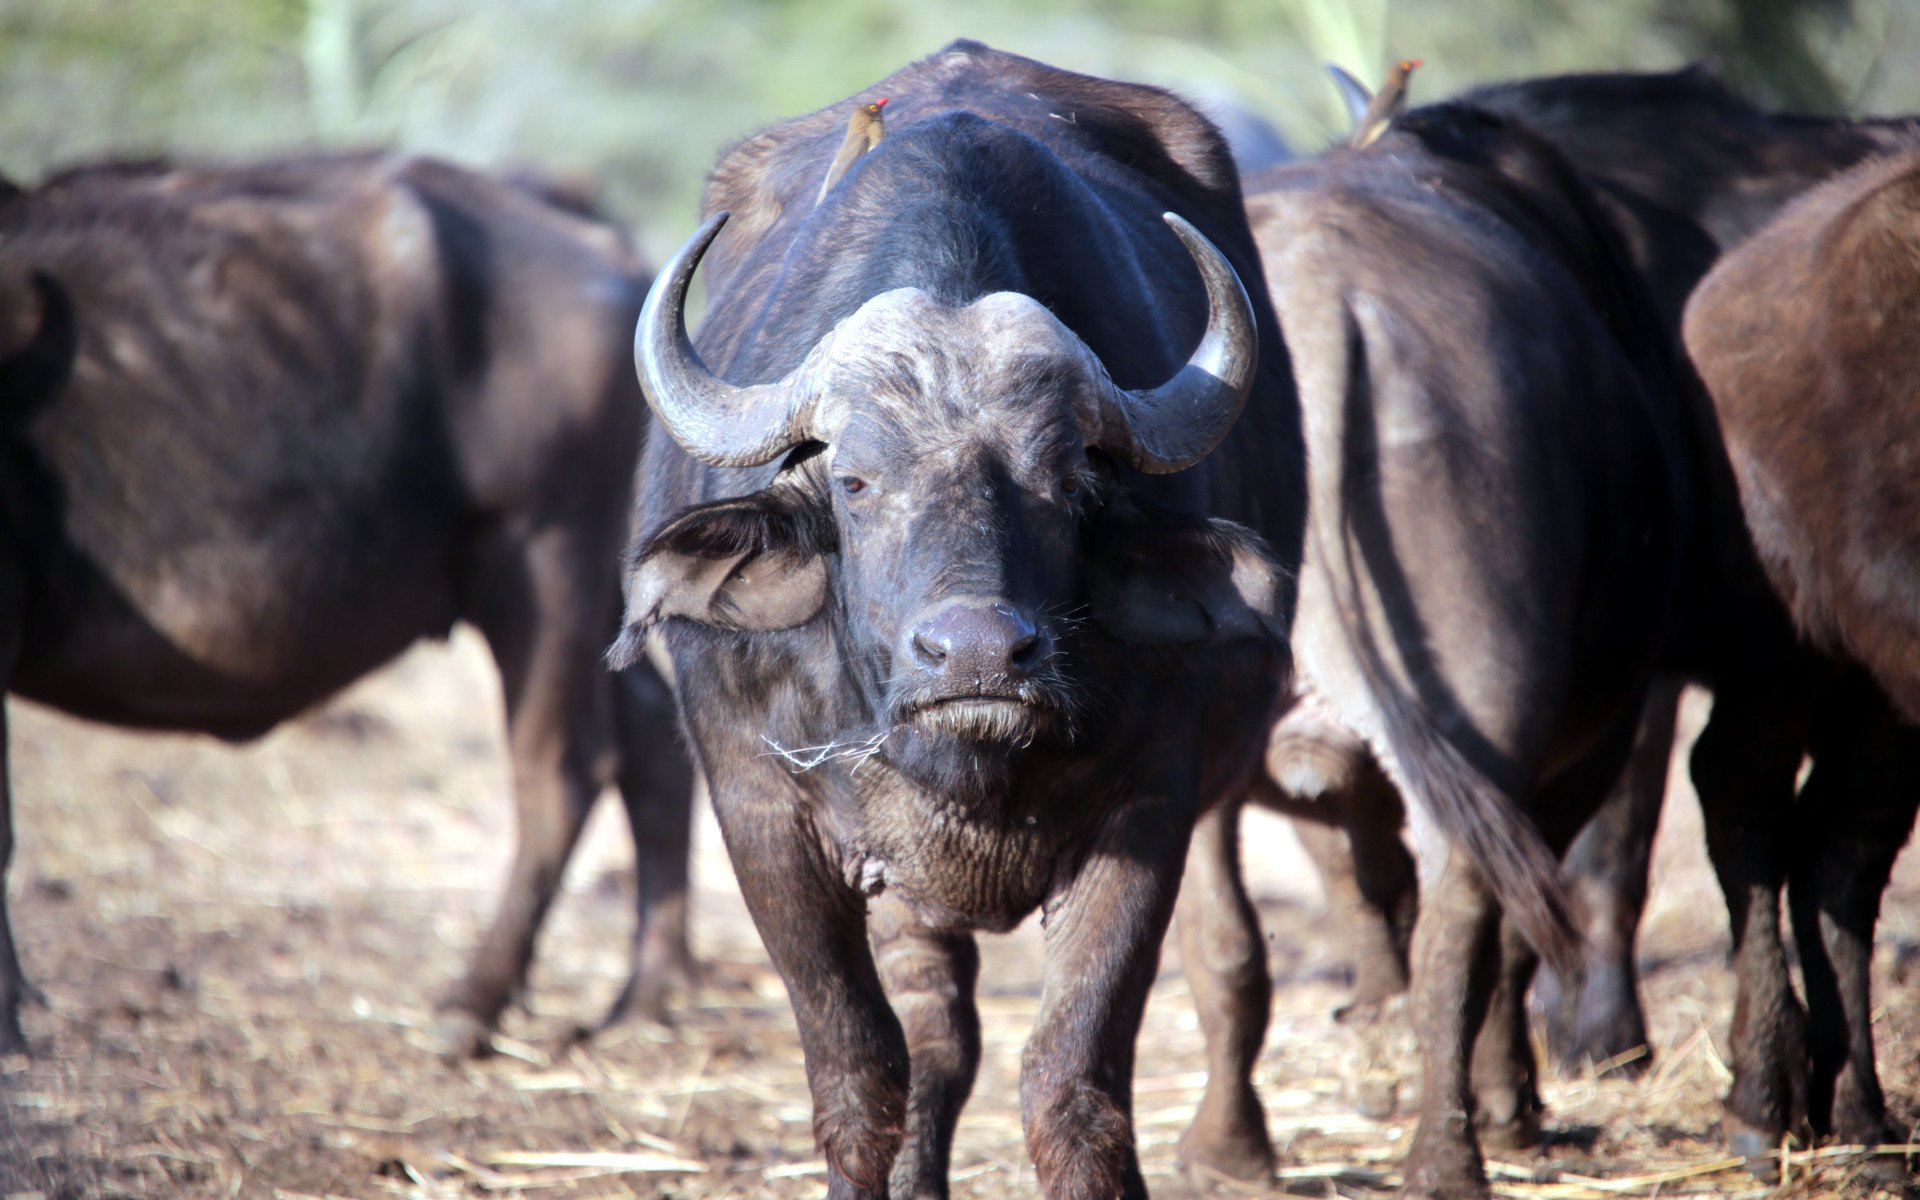 Places to spot Buffaloes: Samburu National Reserve, Meru National Park, Tsavo National Park, and Masai Mara National Park.